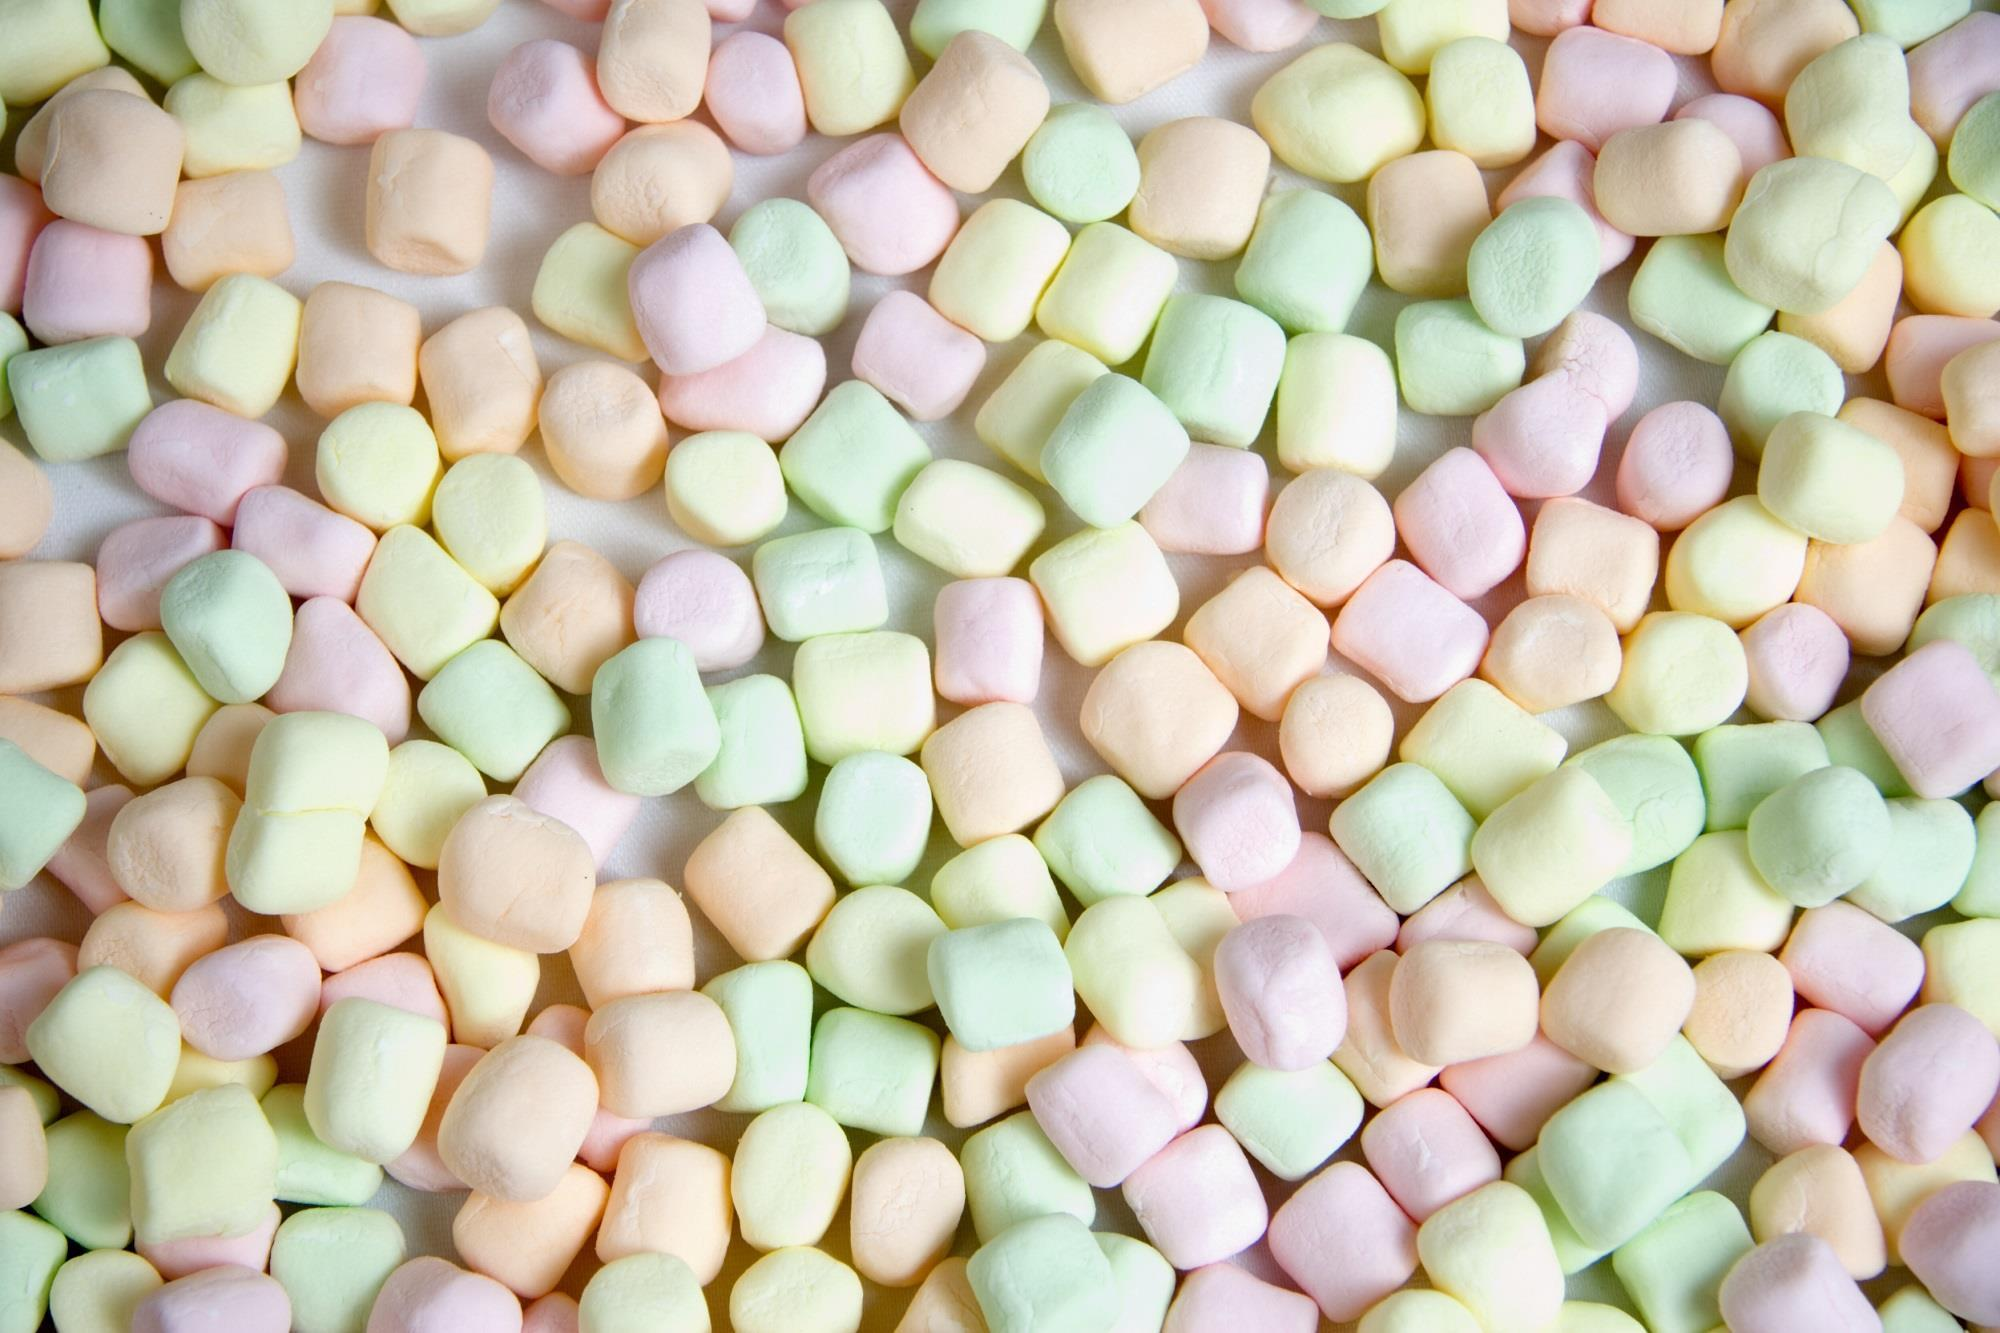 Insurtech start-up founder says Marshmallow has had to pay thousands of pounds so far to protect its name against the global broker